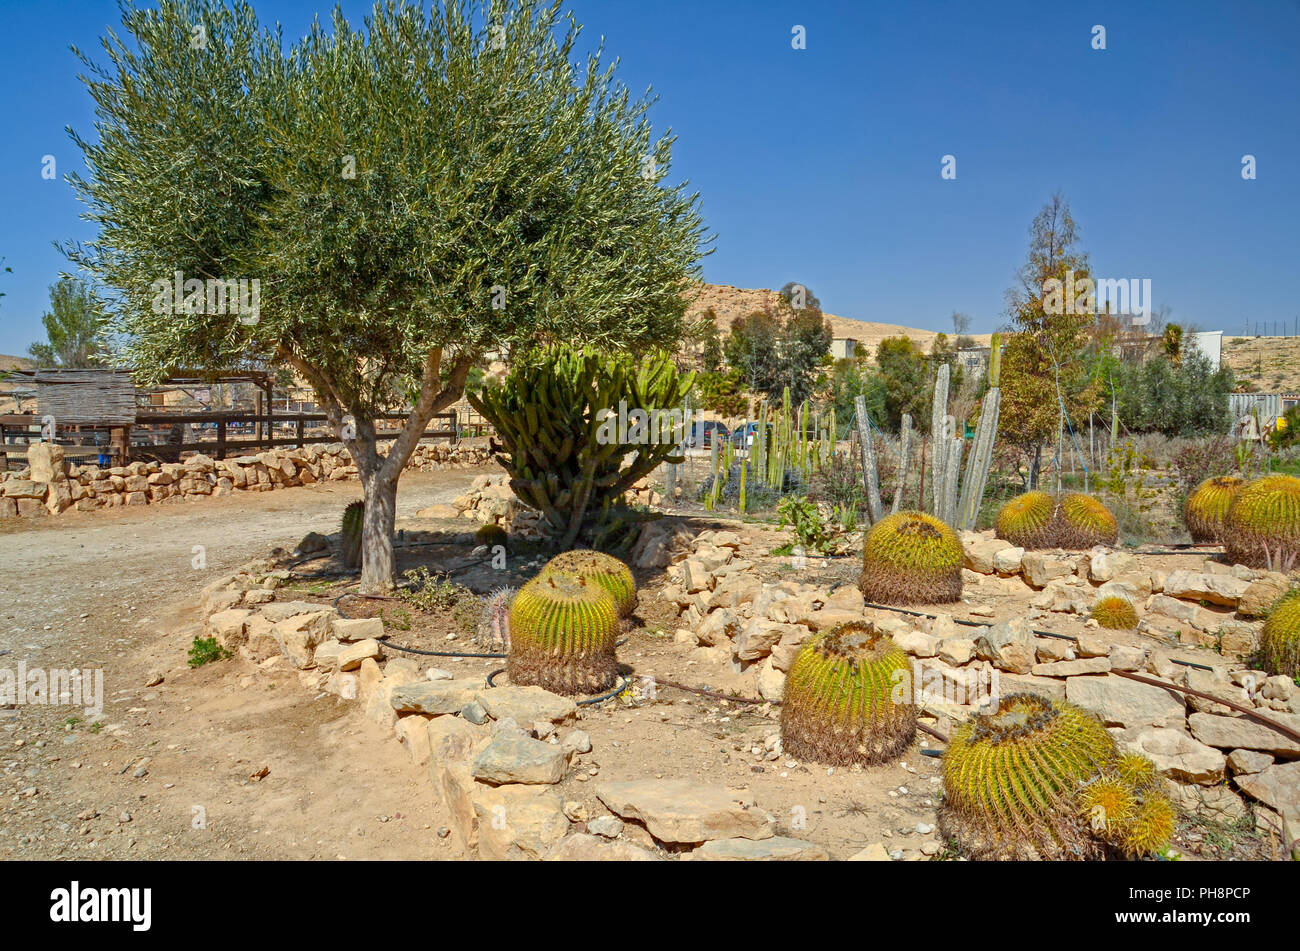 Cacti garden in the desert - Stock Image